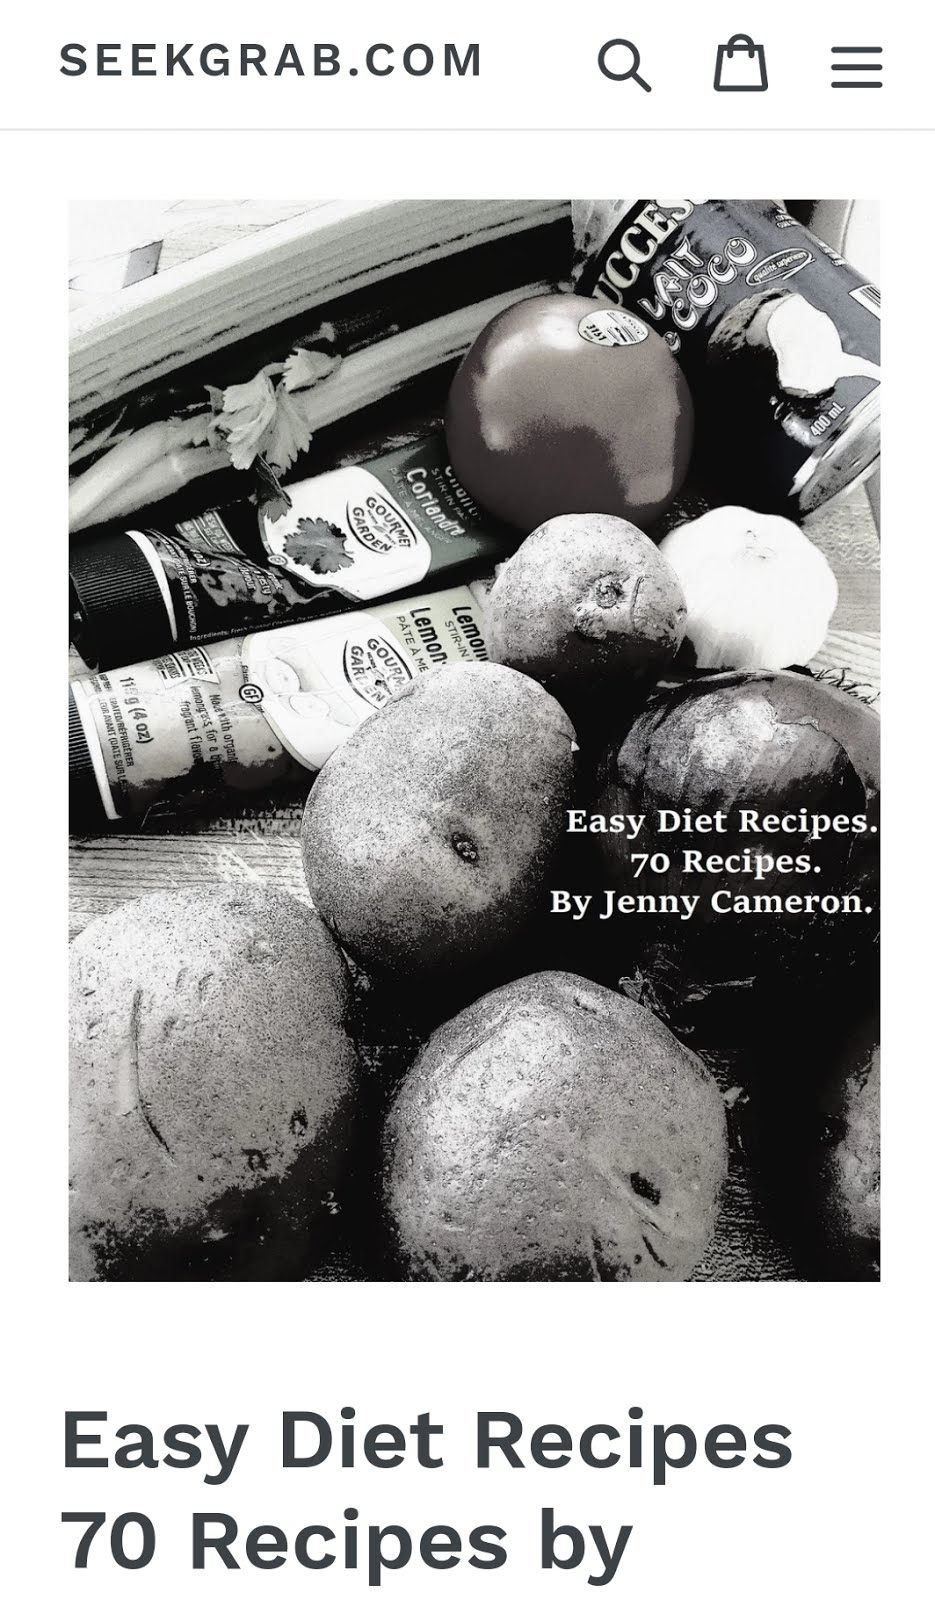 70 Diet Recipes Easy! Request your download here.